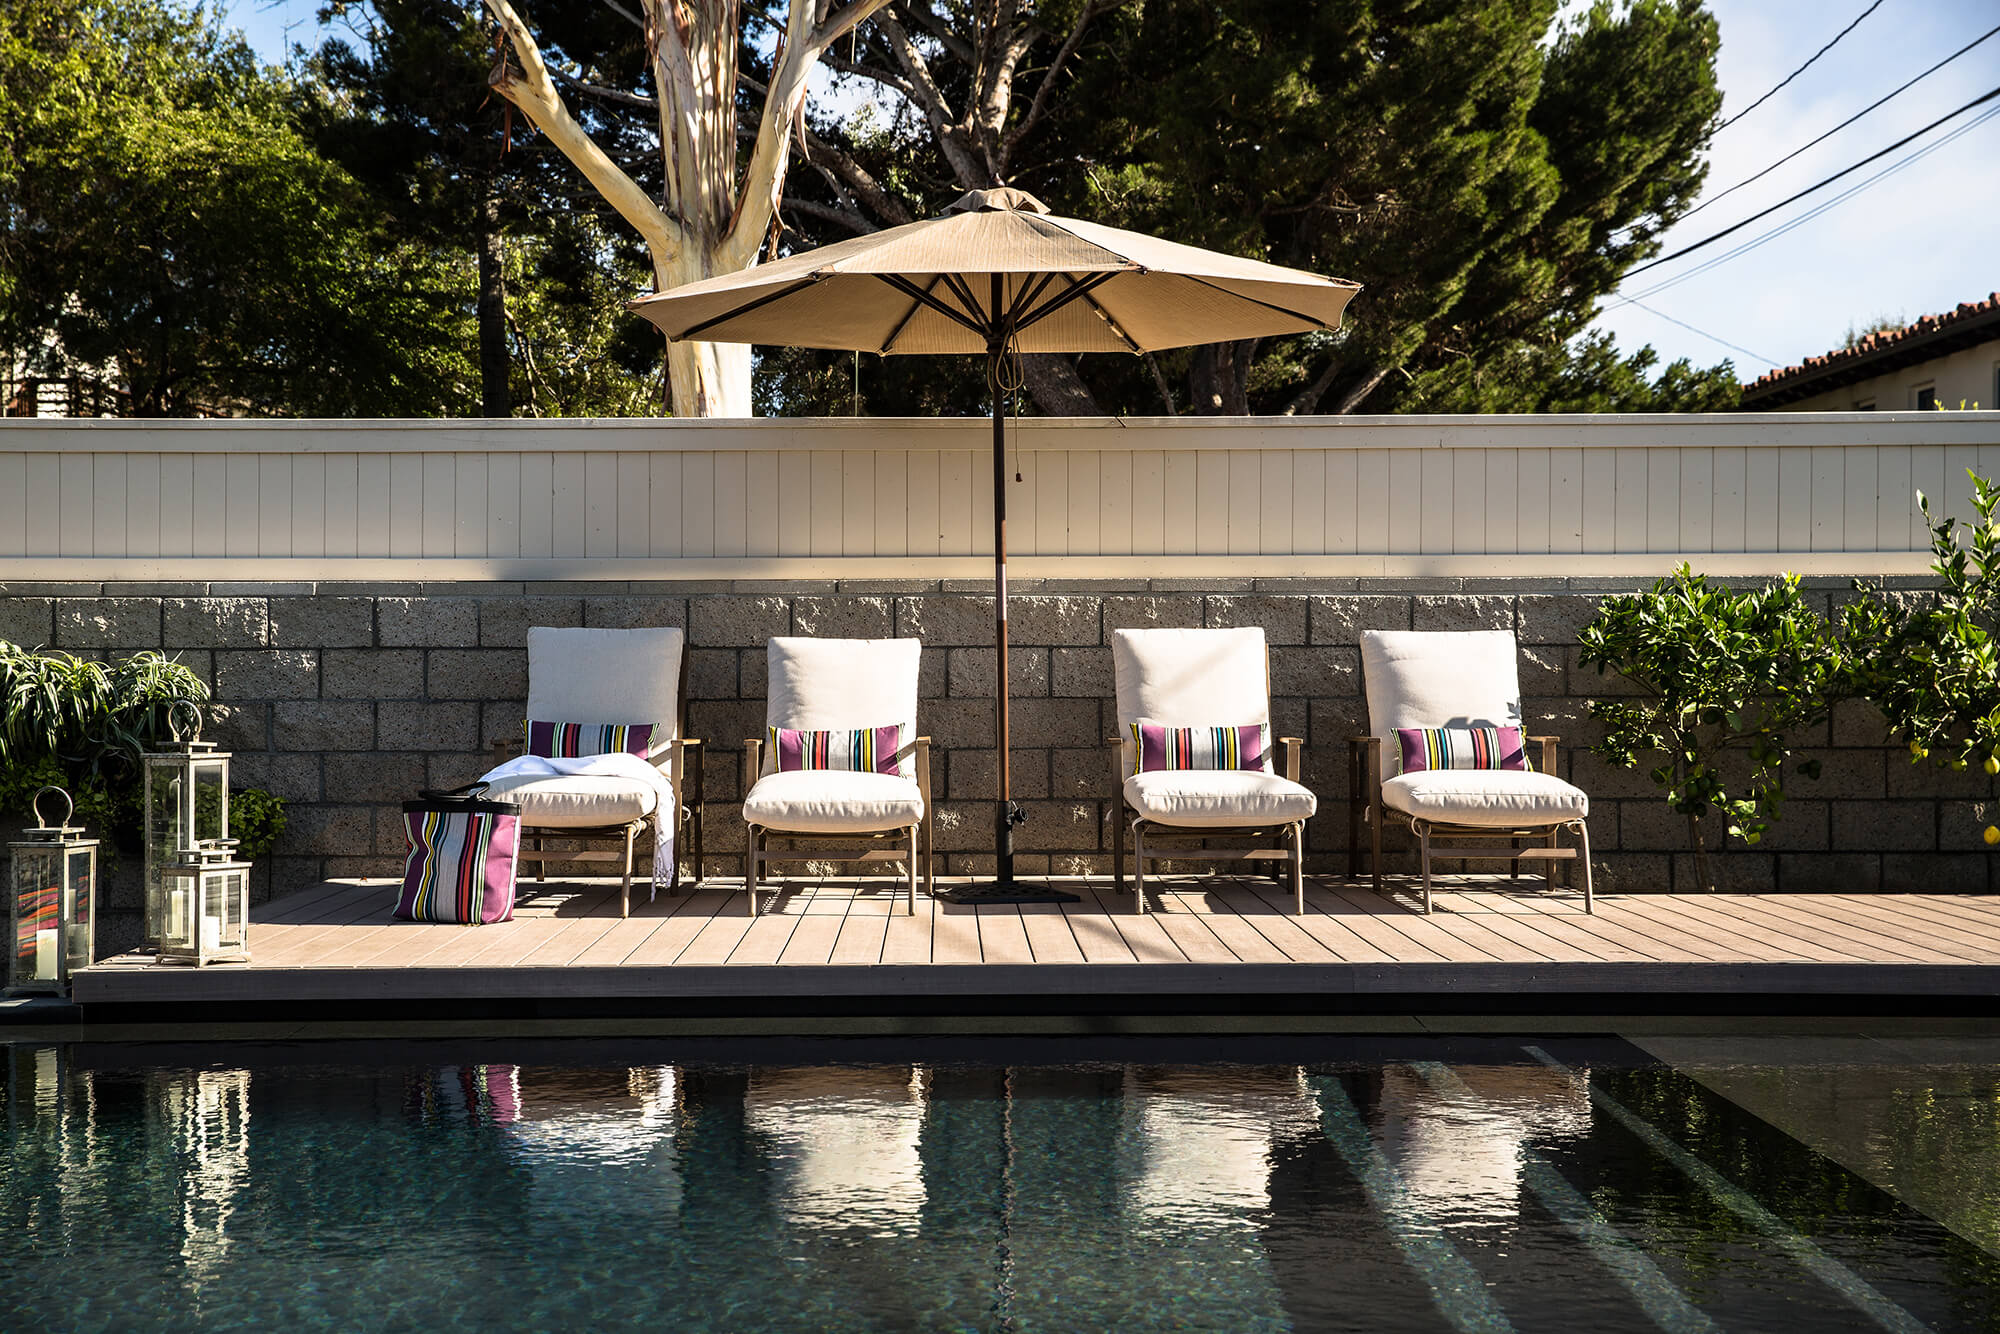 A beige umbrella made using Sunbrella fabrics shades lounge chairs next to the pool